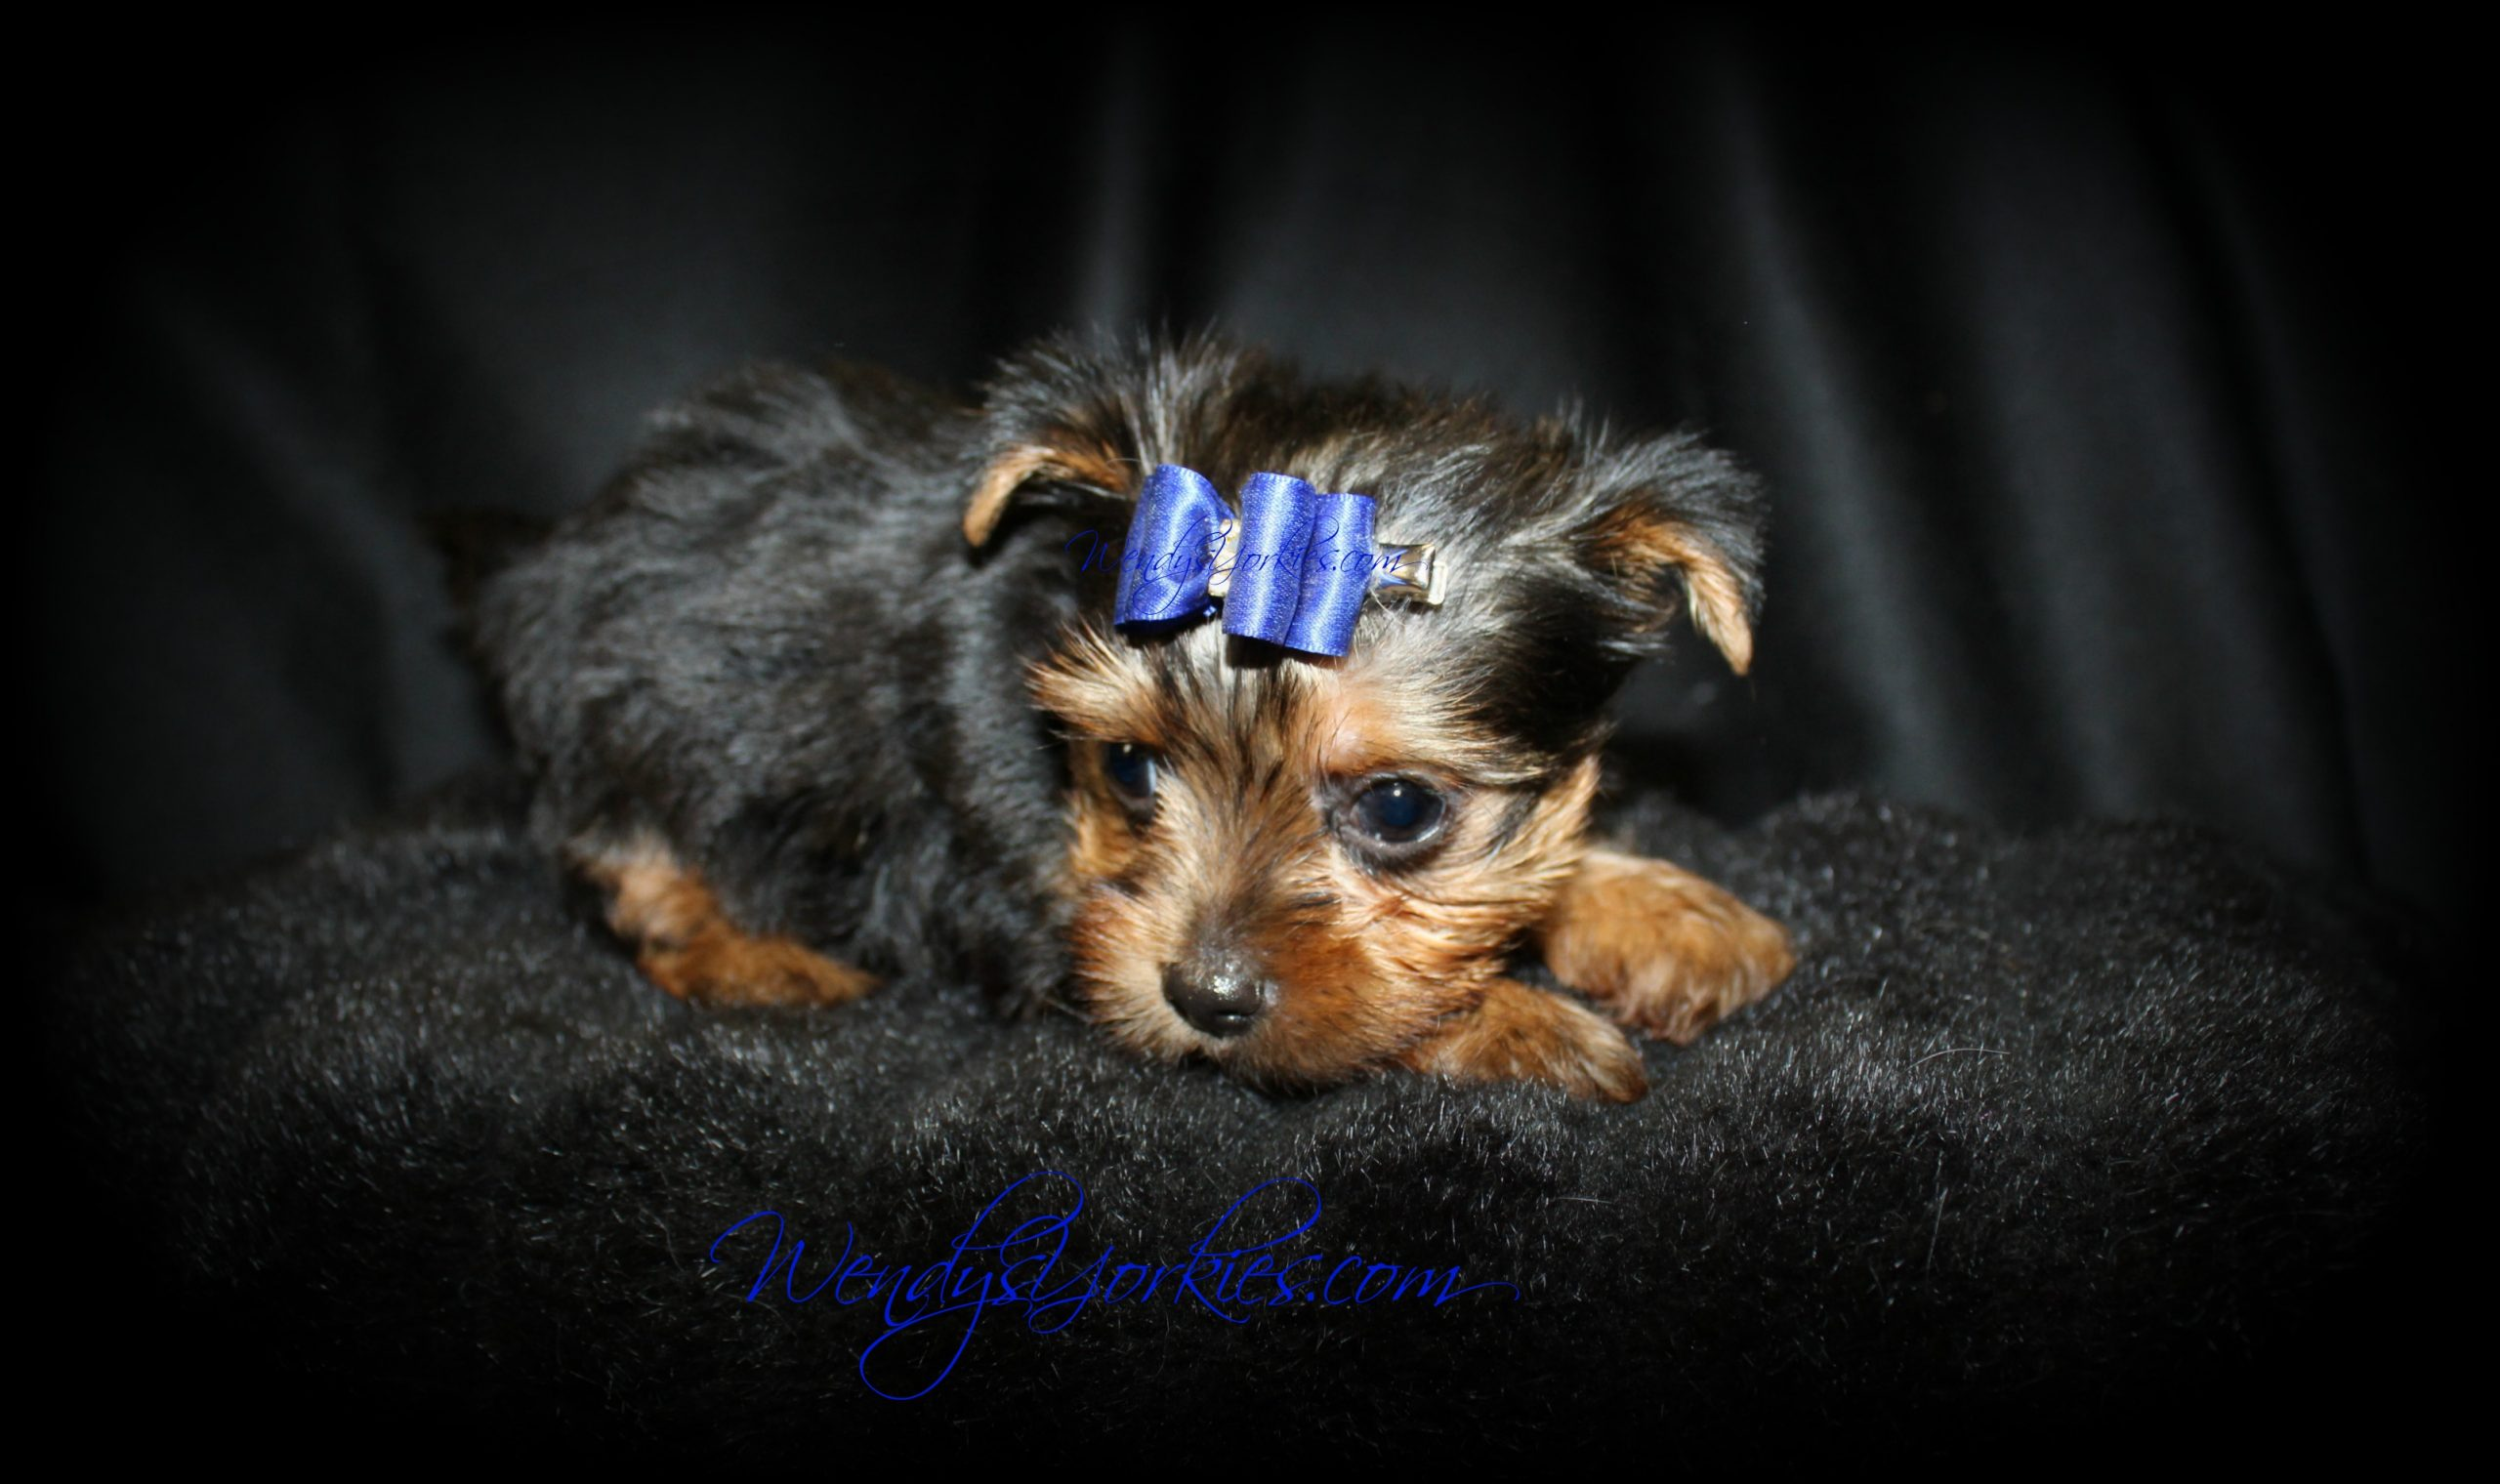 Male Teacup Yorkie puppy for sale in Texas, Star m1, WendysYorkies.com